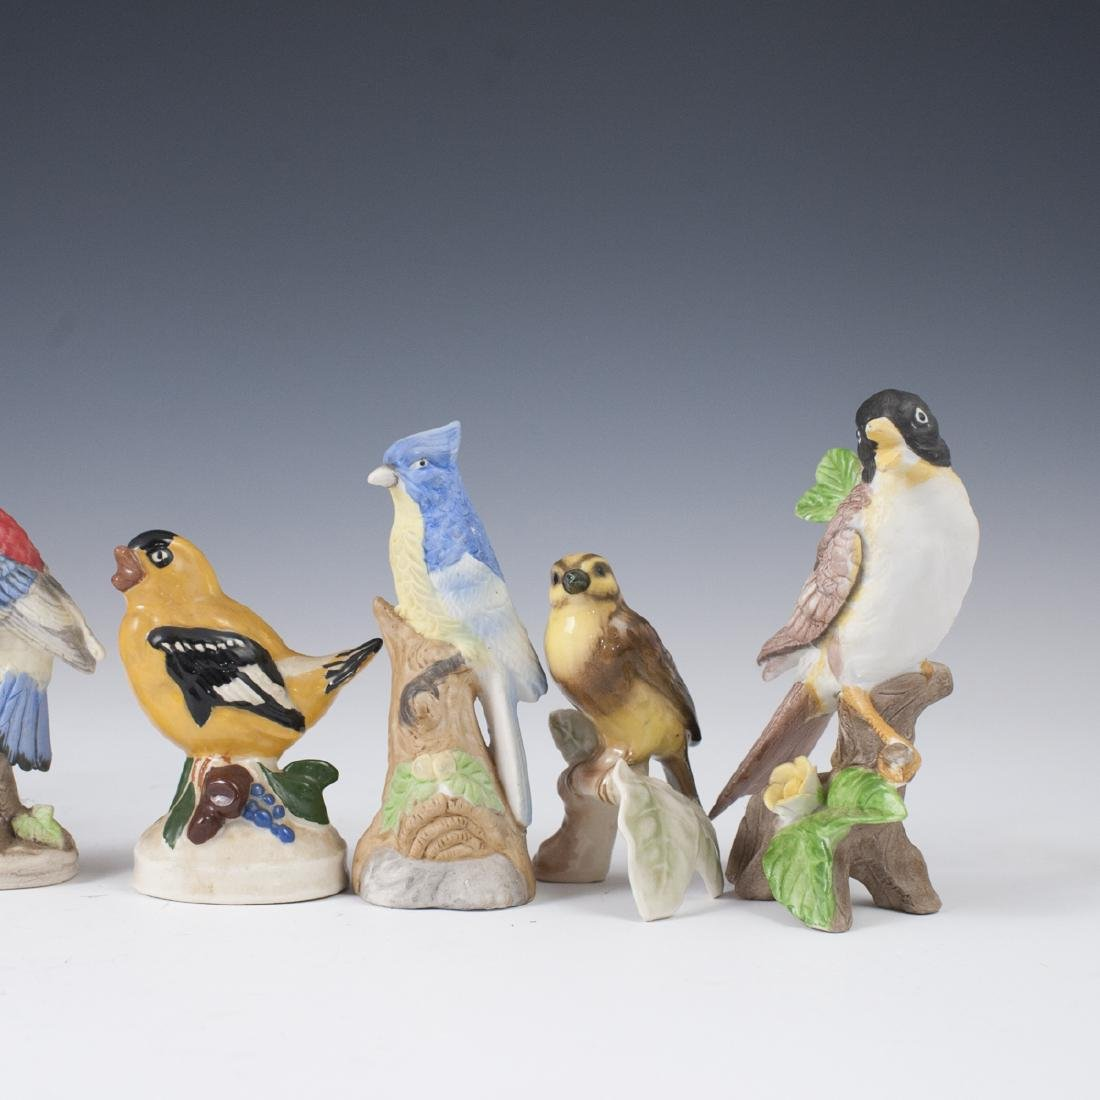 Vintage Porcelain Bird Figurines - 3